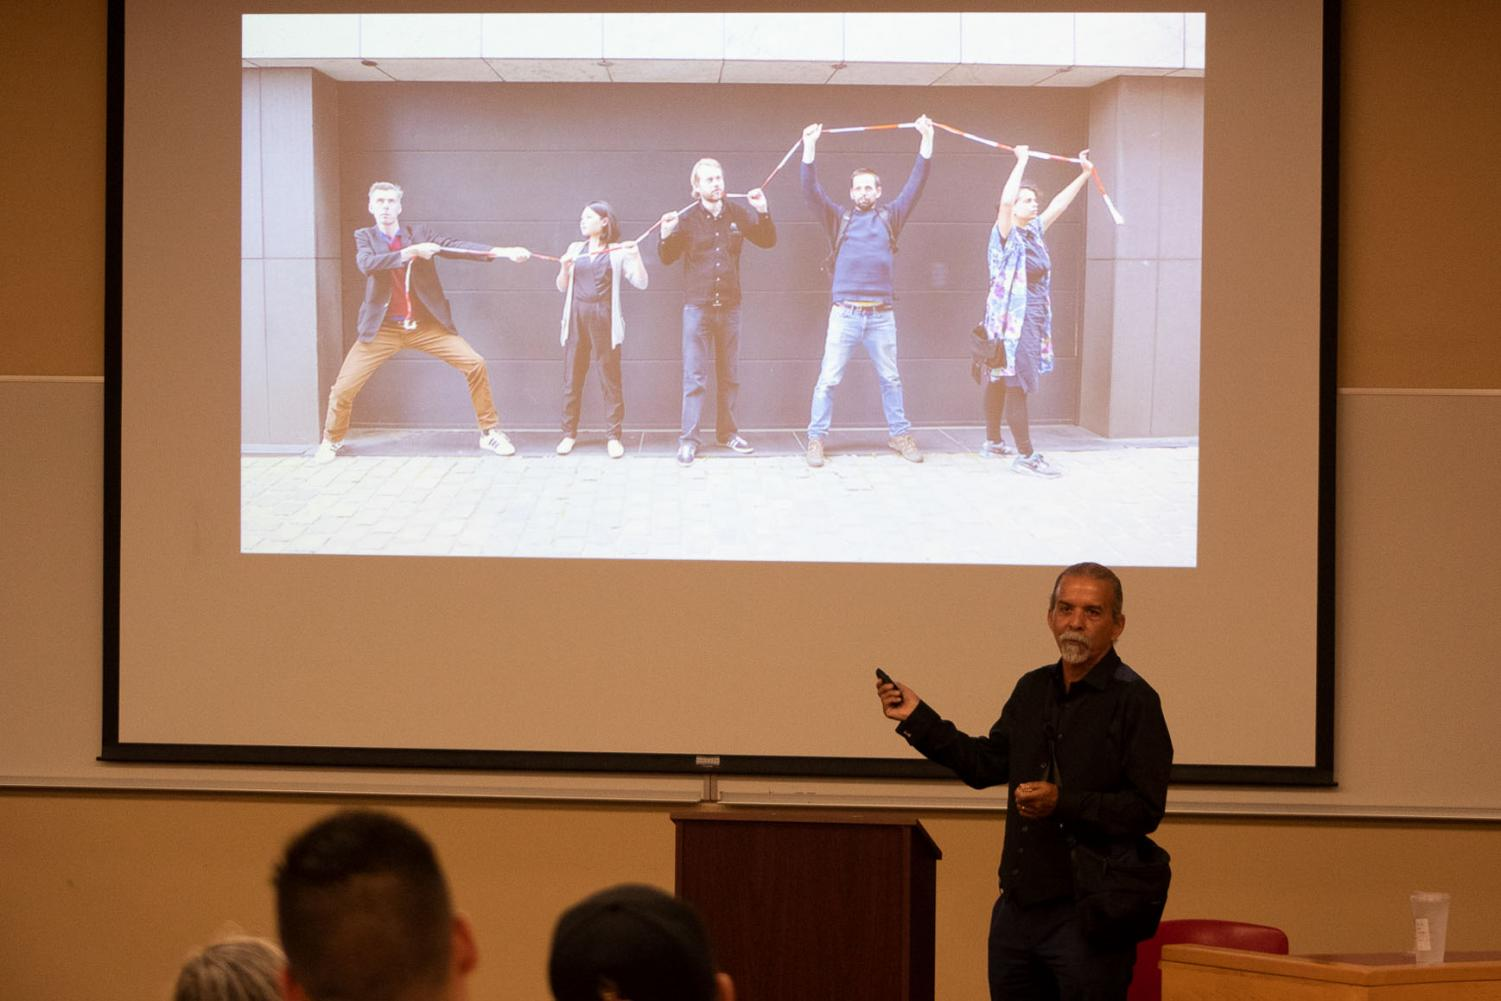 Harry Gamboa Jr. shares stories of achieving his goals during a lecture given to celebrate Hispanic Heritage Month on Wednesday, Sept. 11 2019, in Administration Room 211 at City College in Santa Barbara, Calif. Gamboa Jr., a Chicano essayist, photographer, director and performance artist has presented his work all over the world.